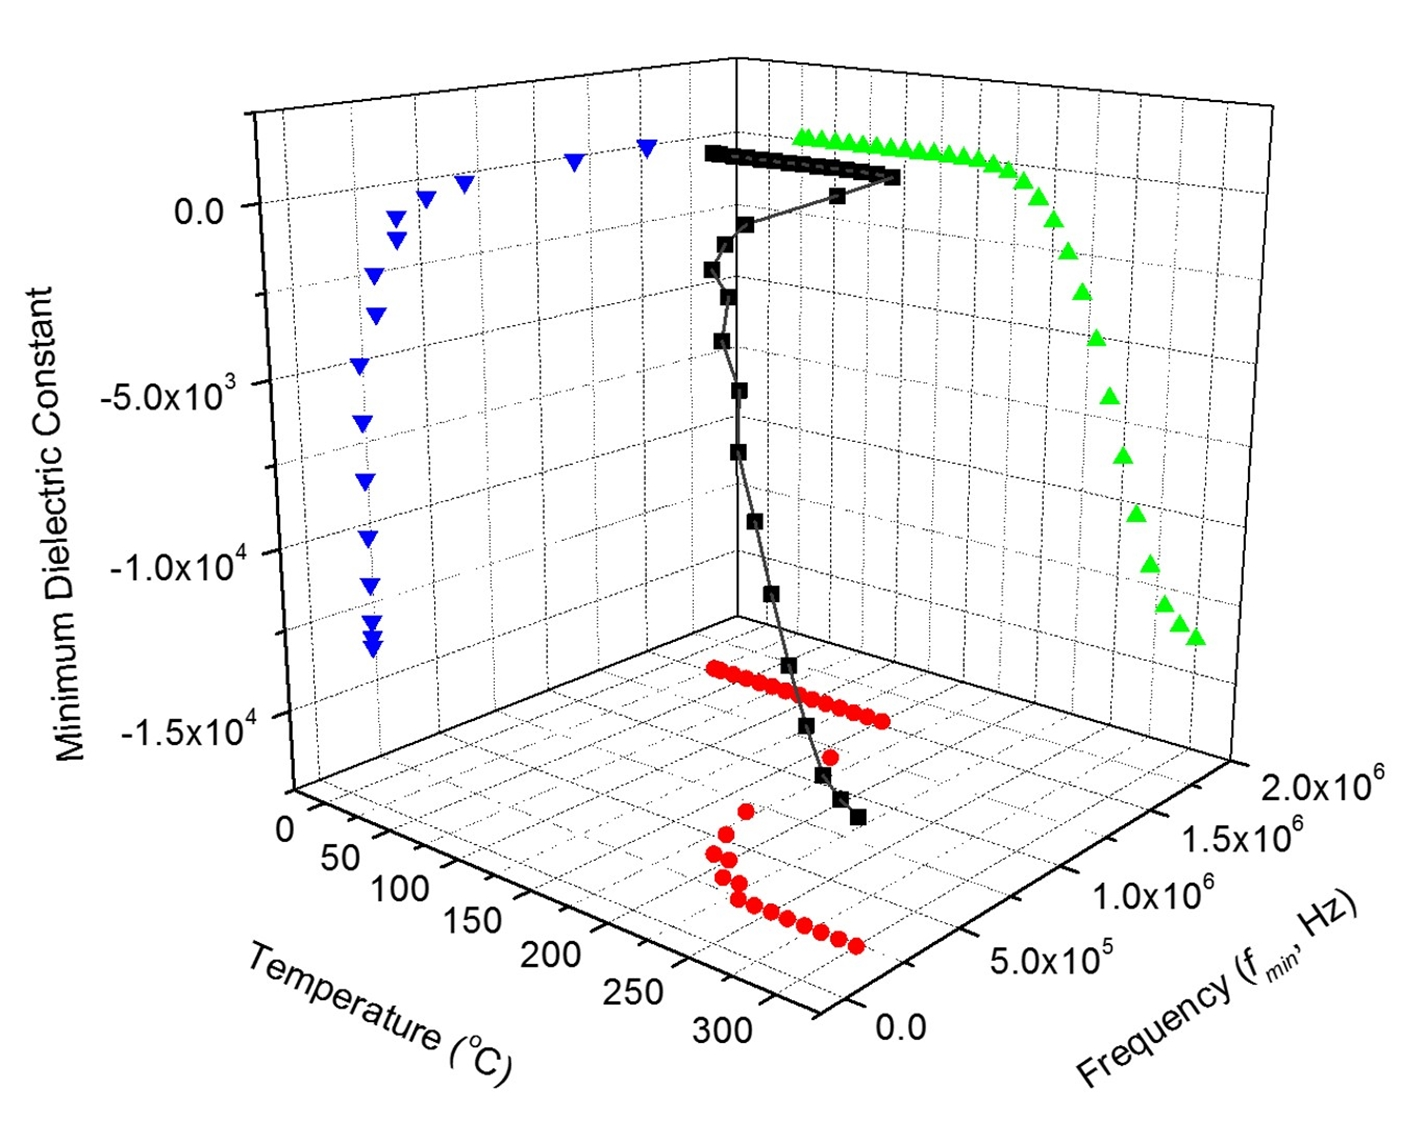 3-D plot of minimum dielectric constant, temperature and frequency